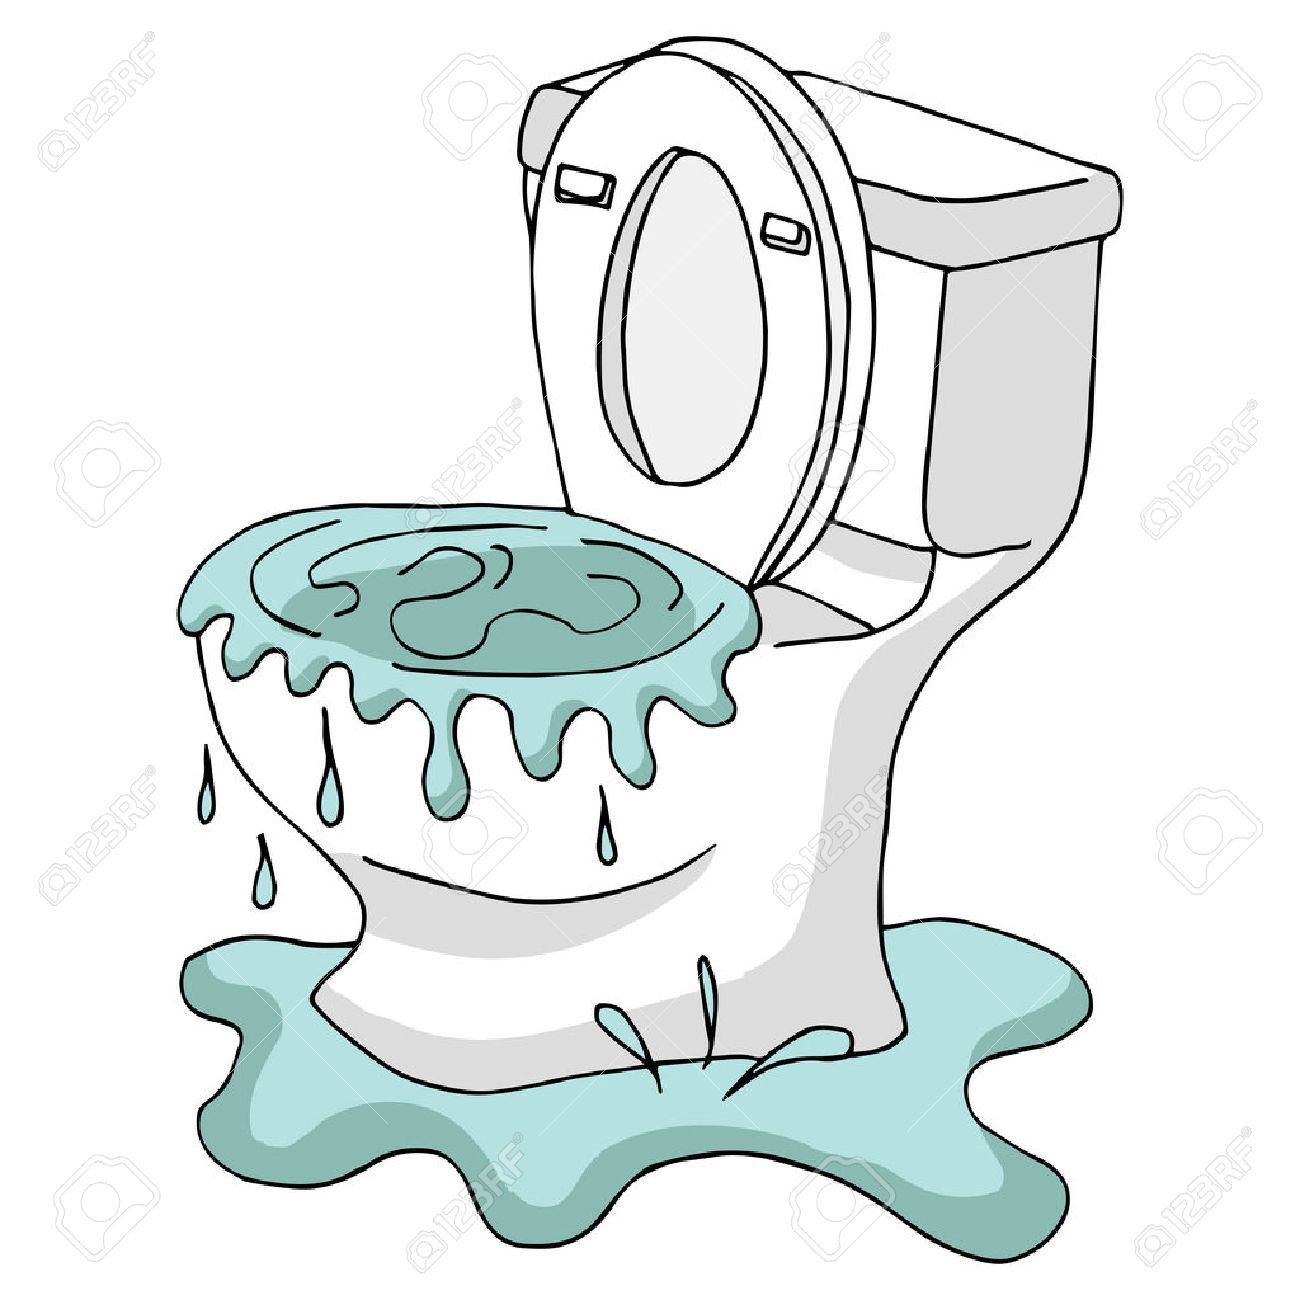 An Image Of A Clogged Toilet. Stock Vector   67151224